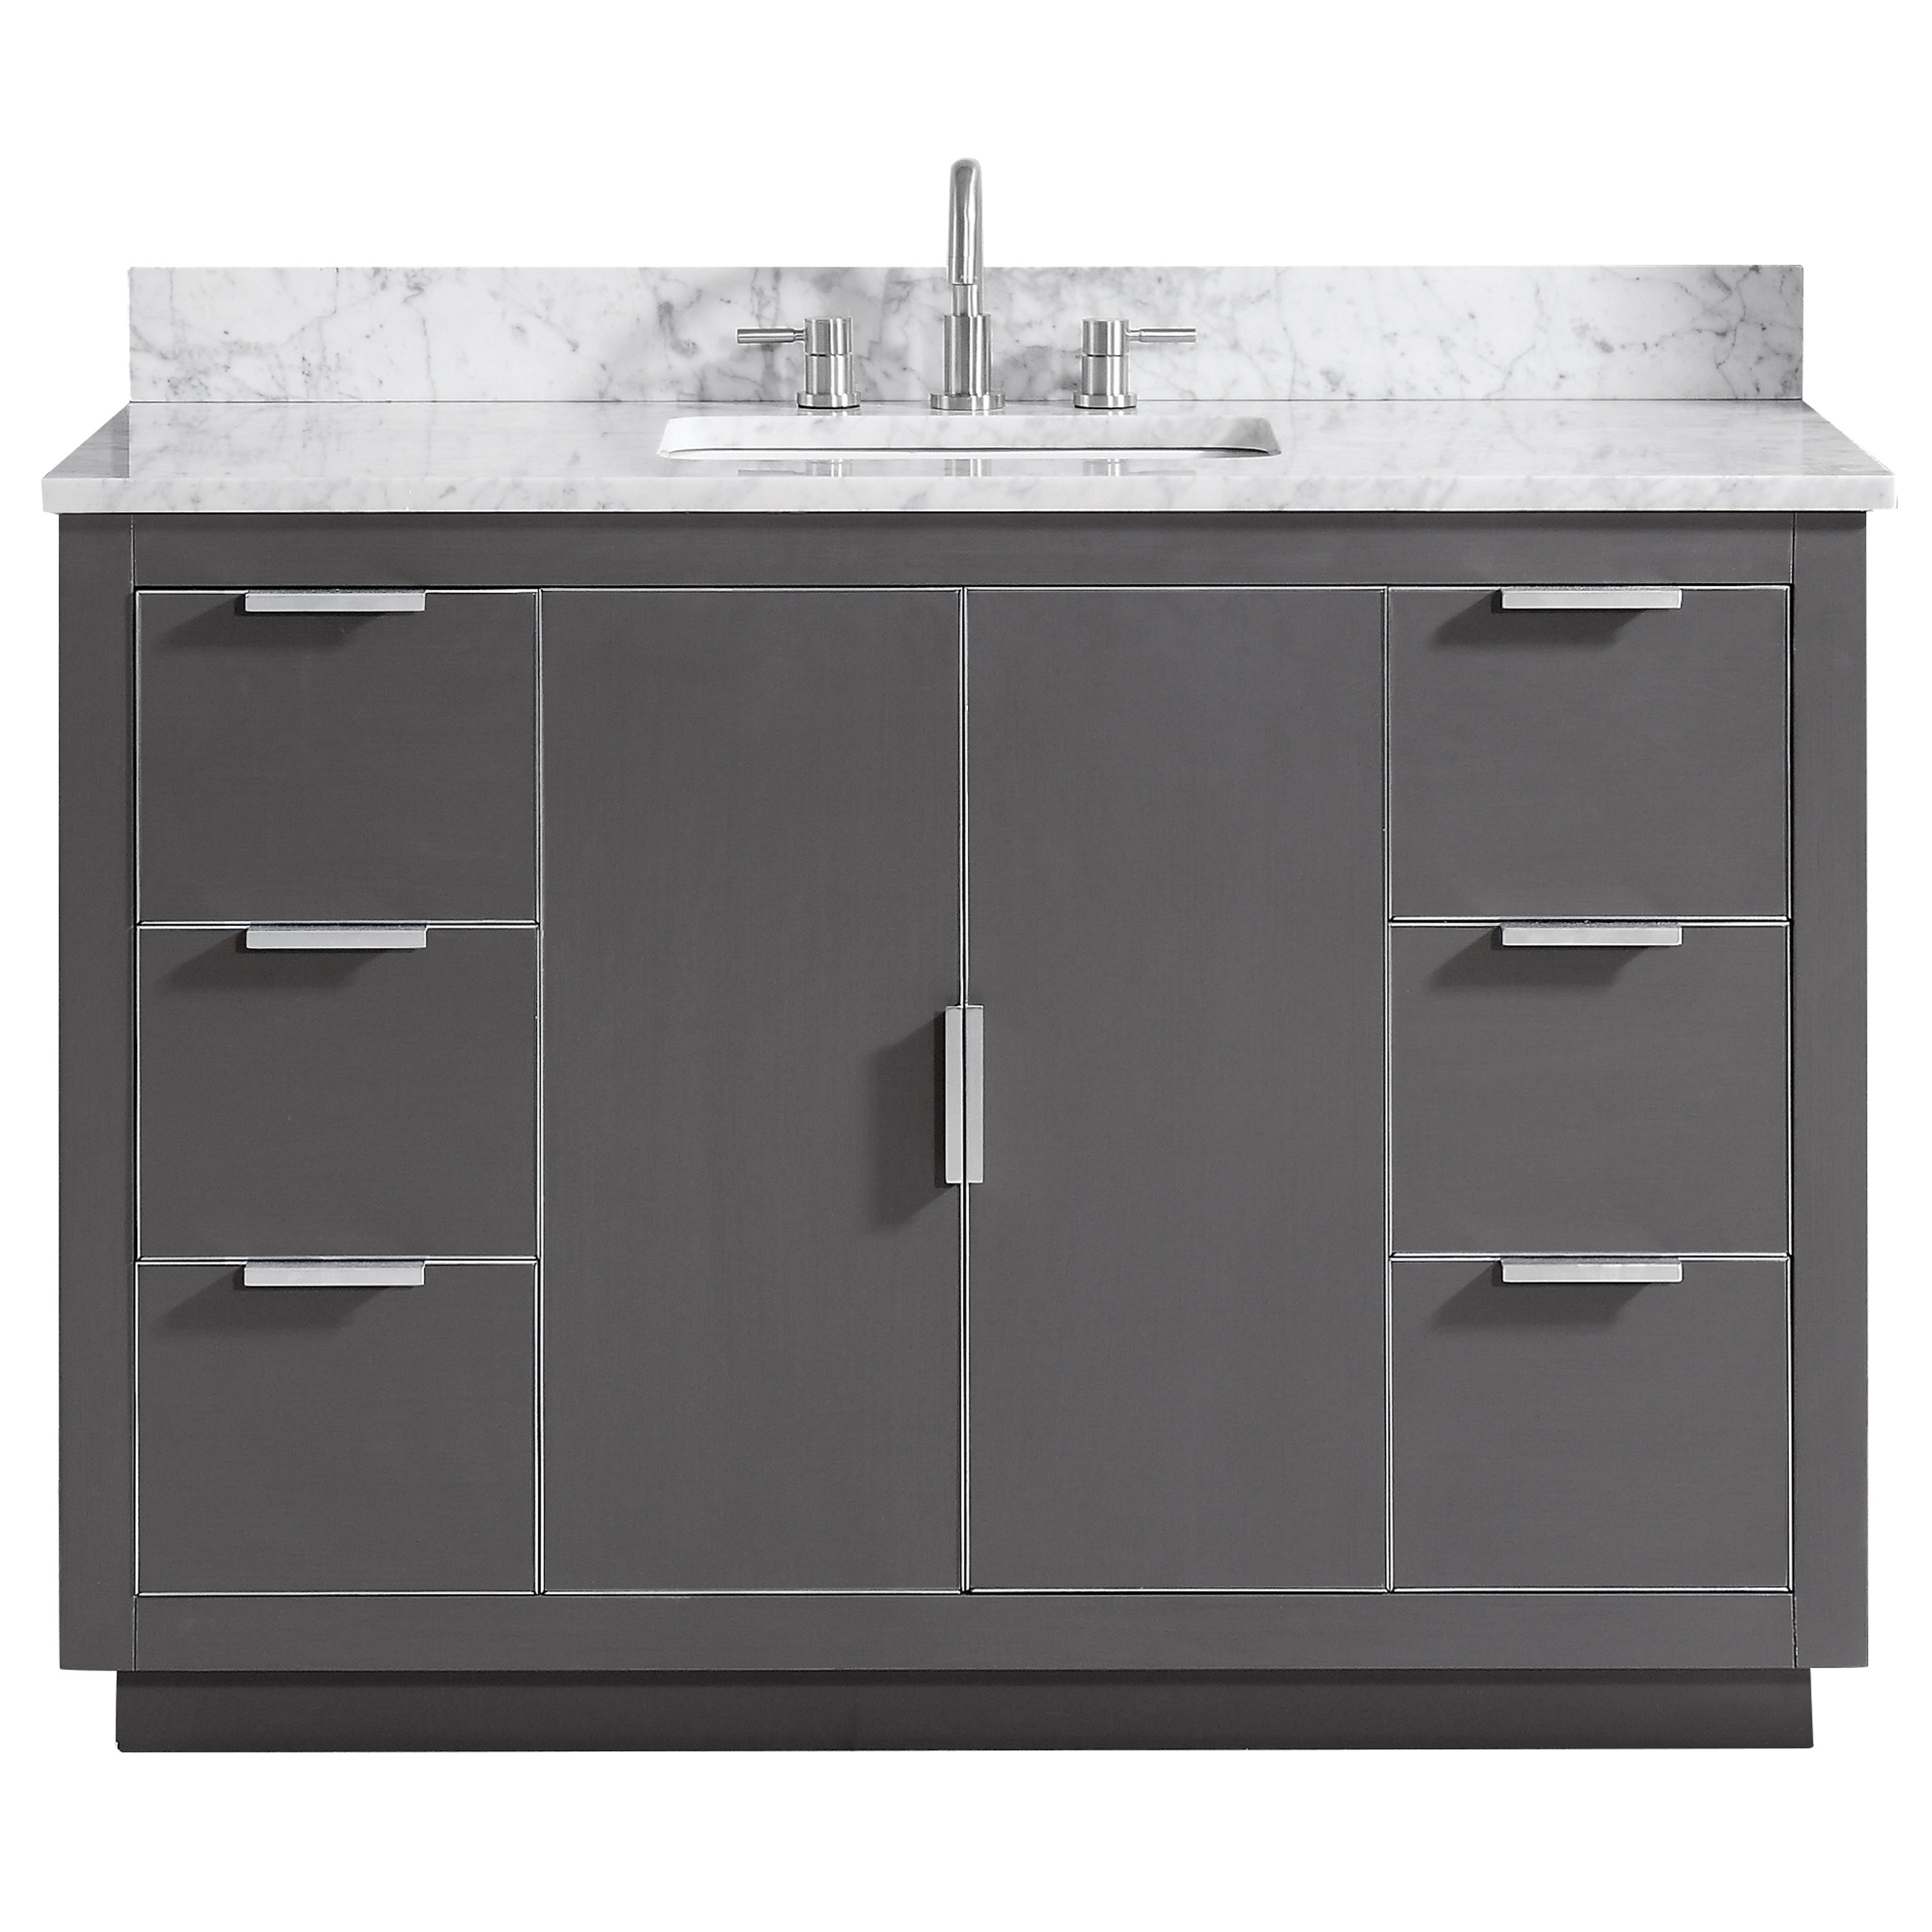 Shop Avanity Austen 49 In. Vanity Combo In Twilight Gray With Silver Trim    Free Shipping Today   Overstock.com   20306076